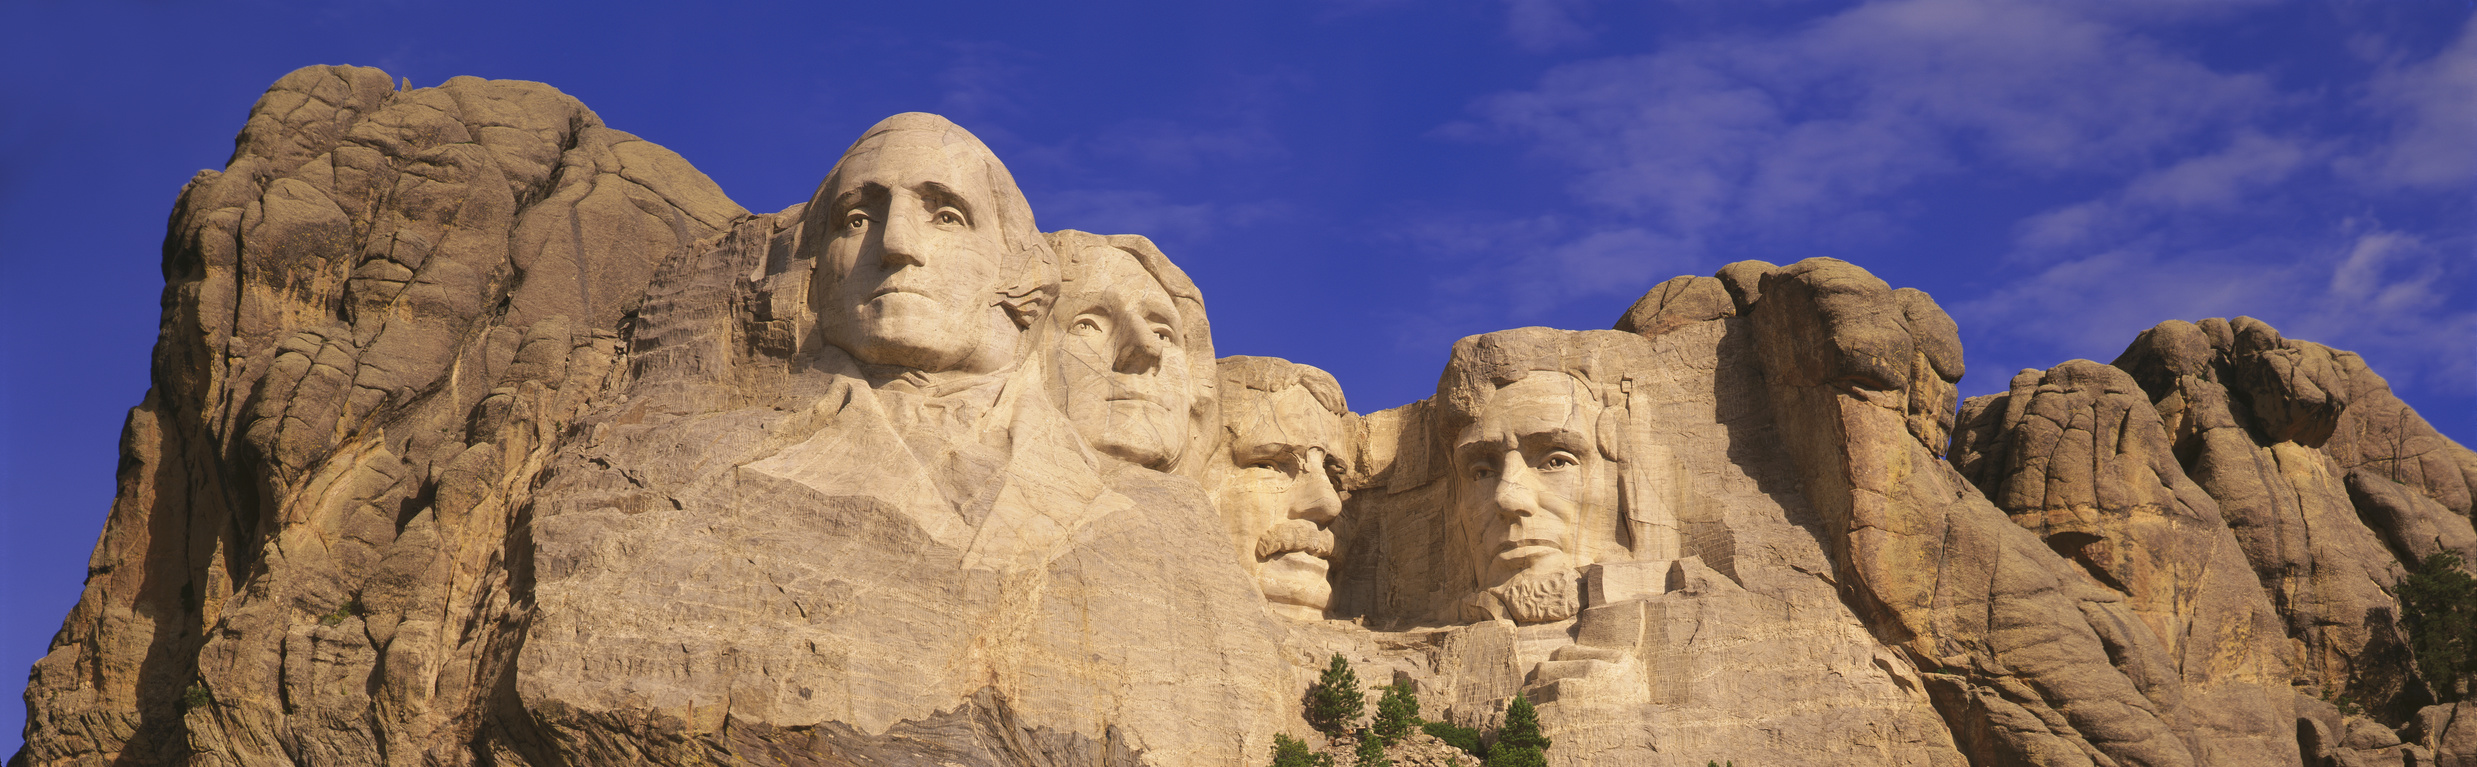 This is a close up view of Mount Rushmore National Monument against a blue sky. It shows the four faces of George Washington, Thomas Jefferson, Theodore Roosevelt, and Abraham Lincoln.